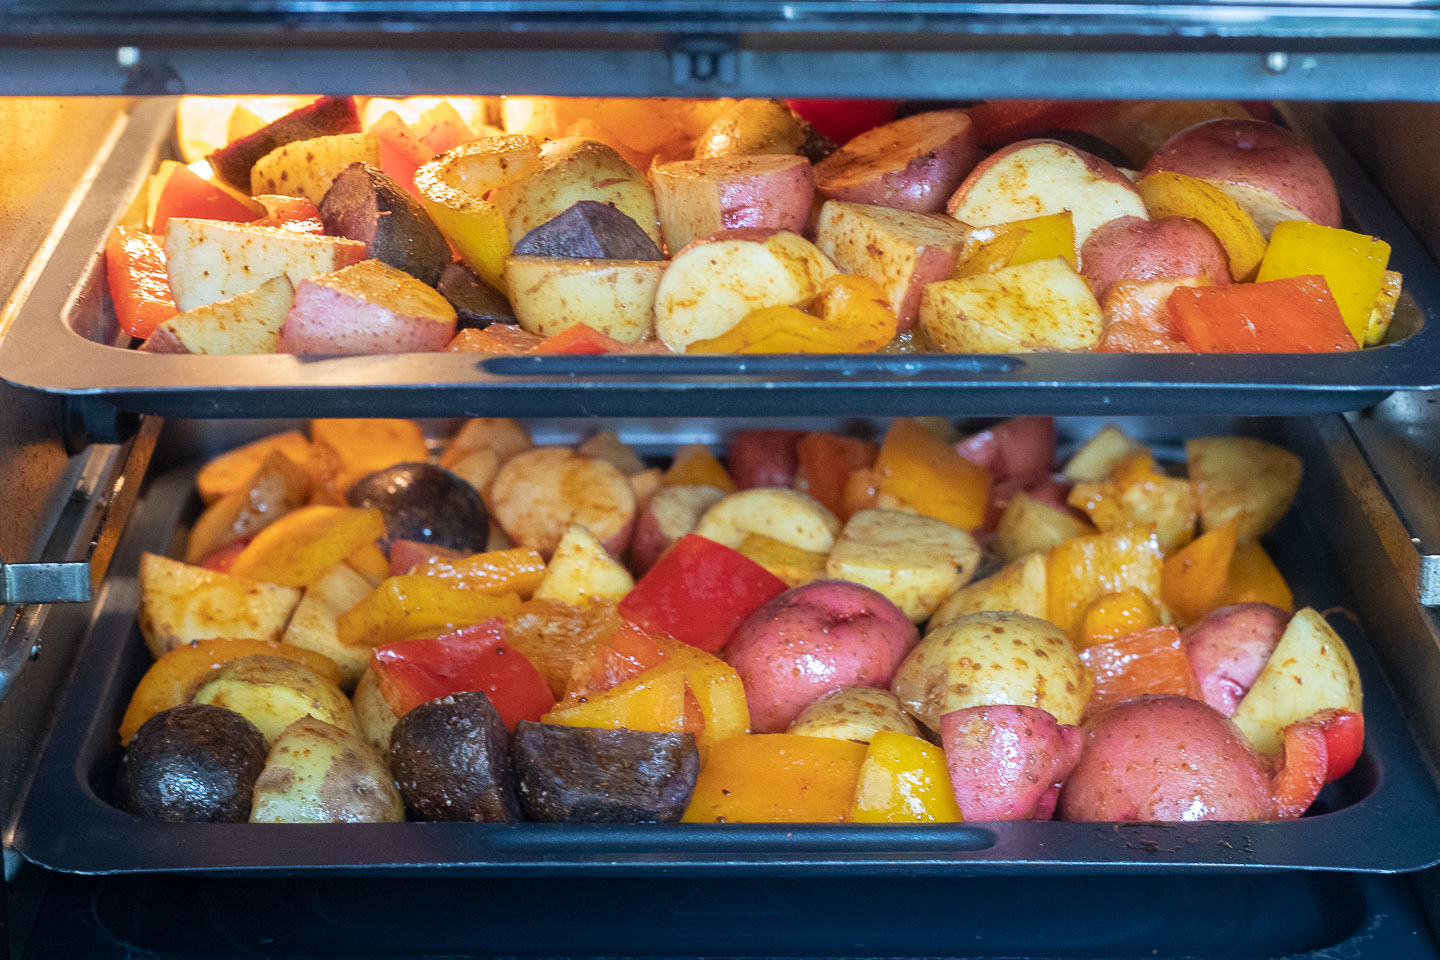 white, red, and purple potatoes and red and yellow bell peppers tossed with chili powder on air fryer oven trays